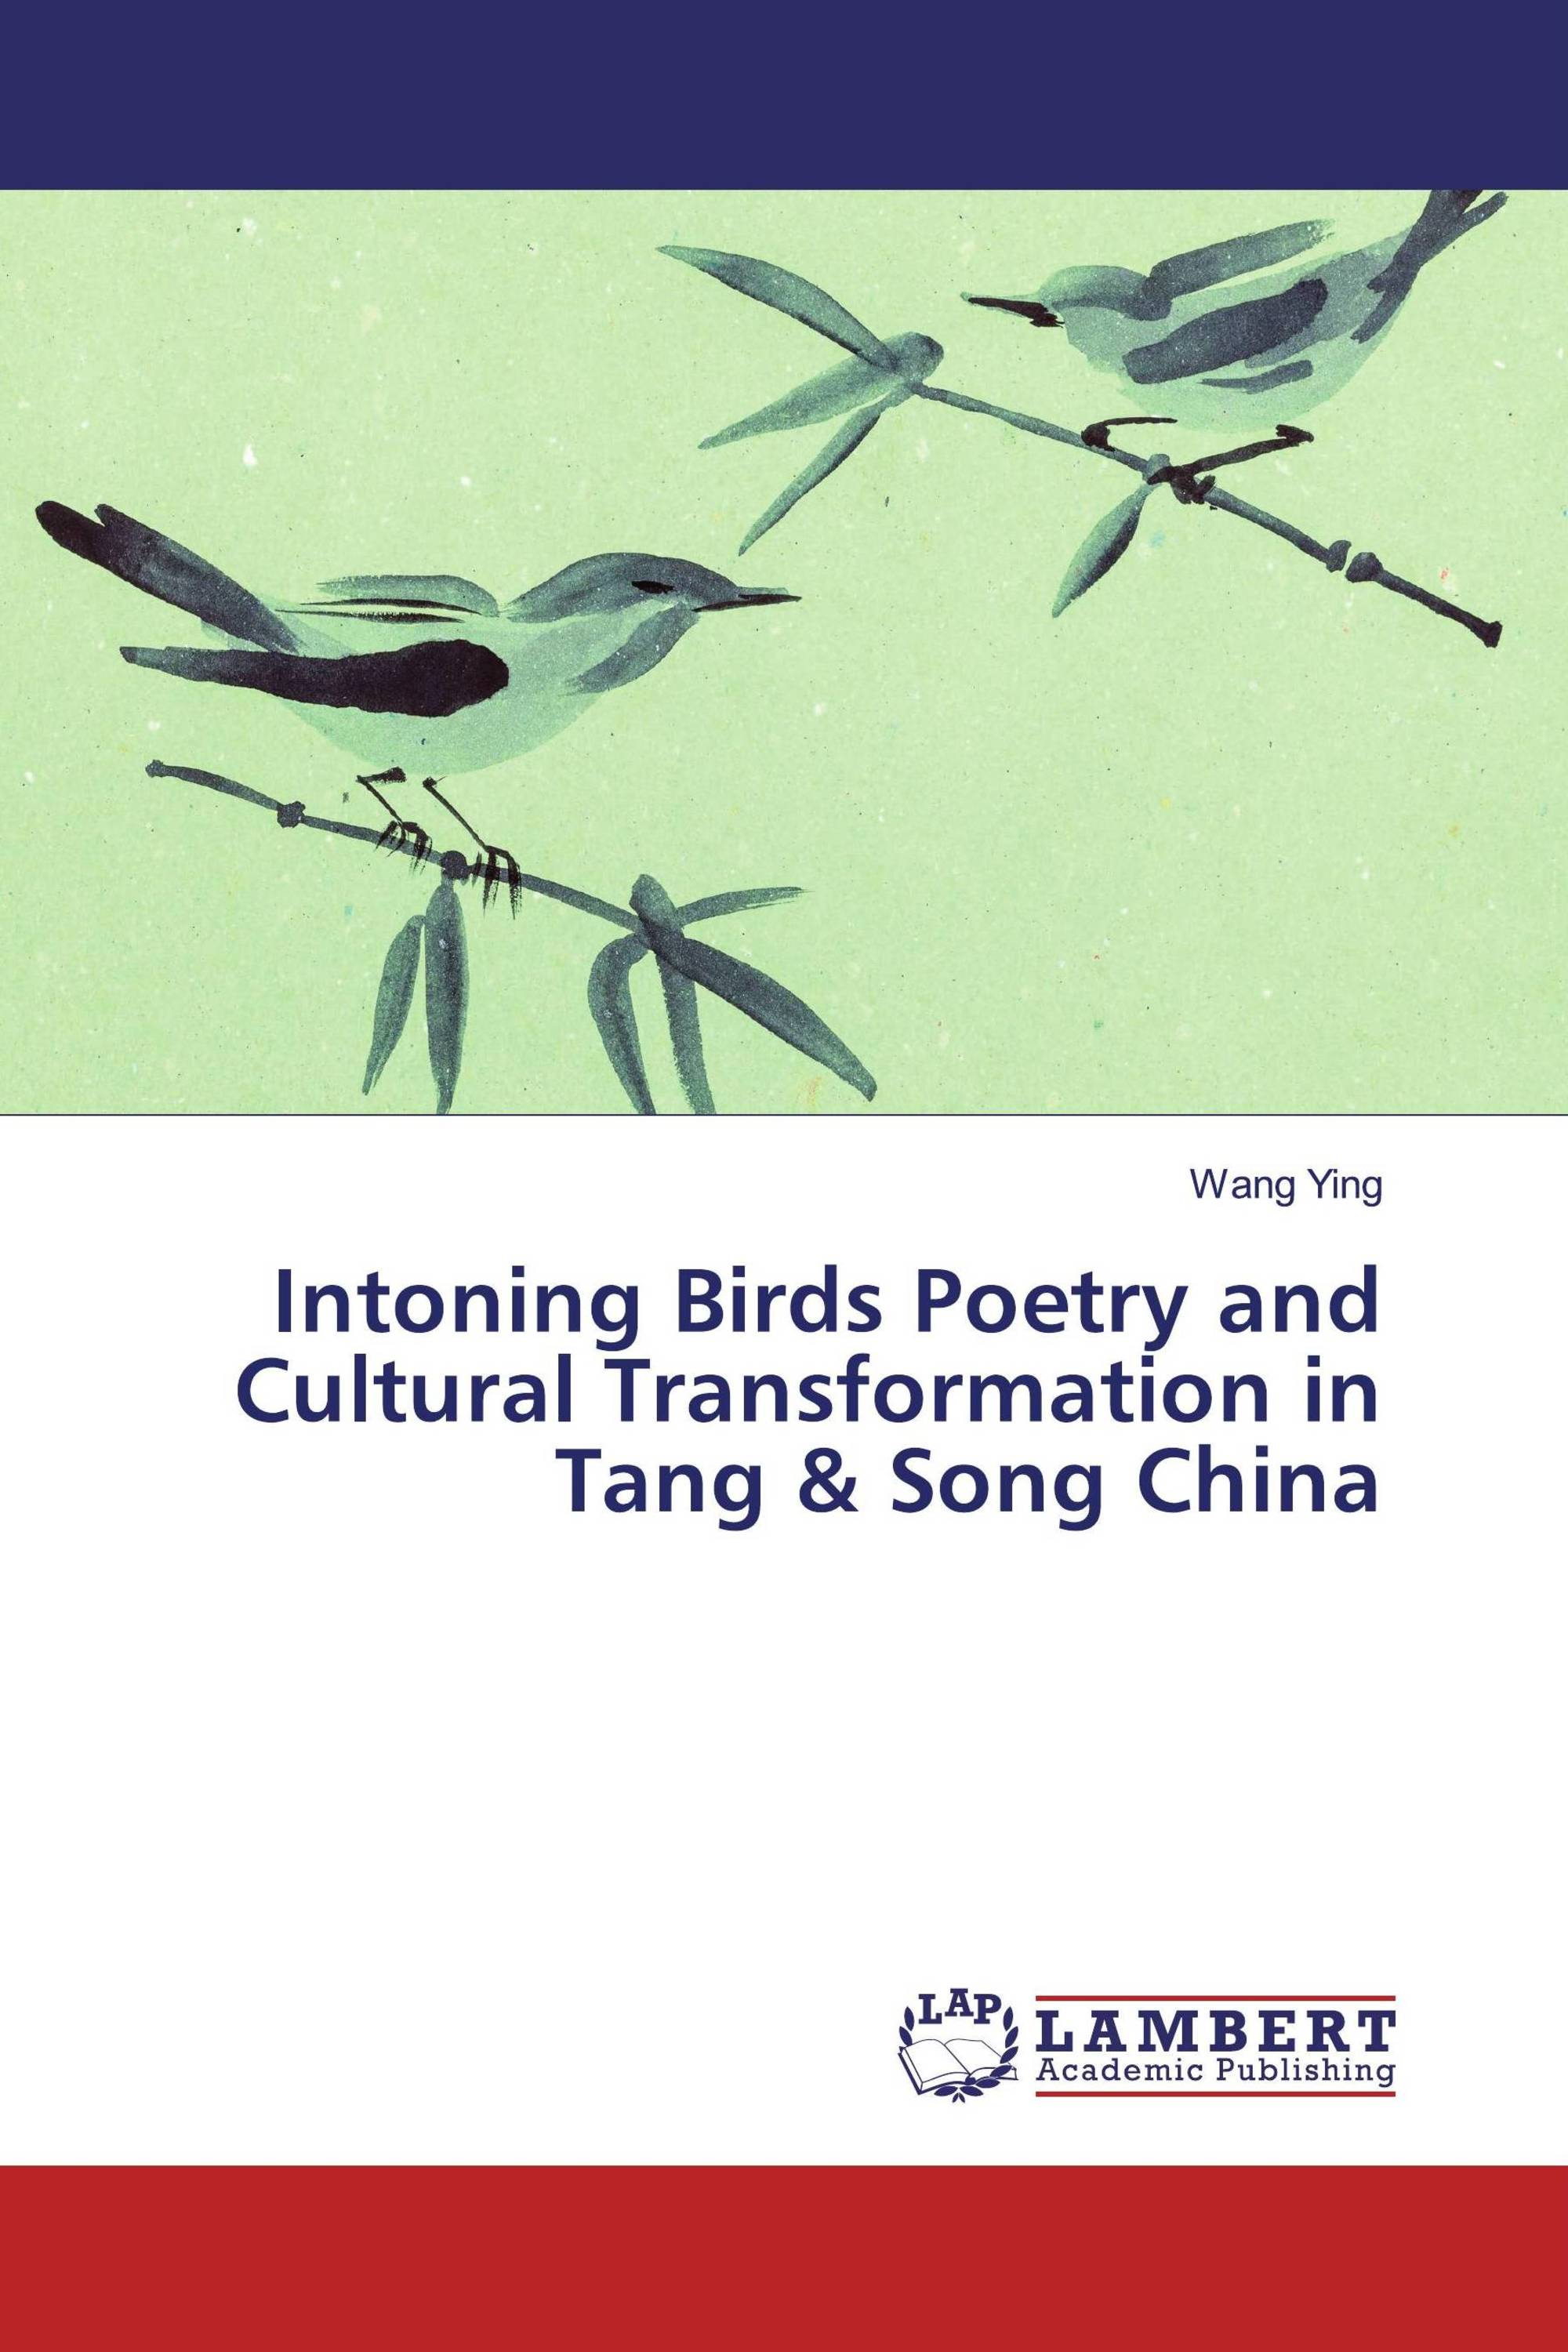 Intoning Birds Poetry and Cultural Transformation in Tang & Song China